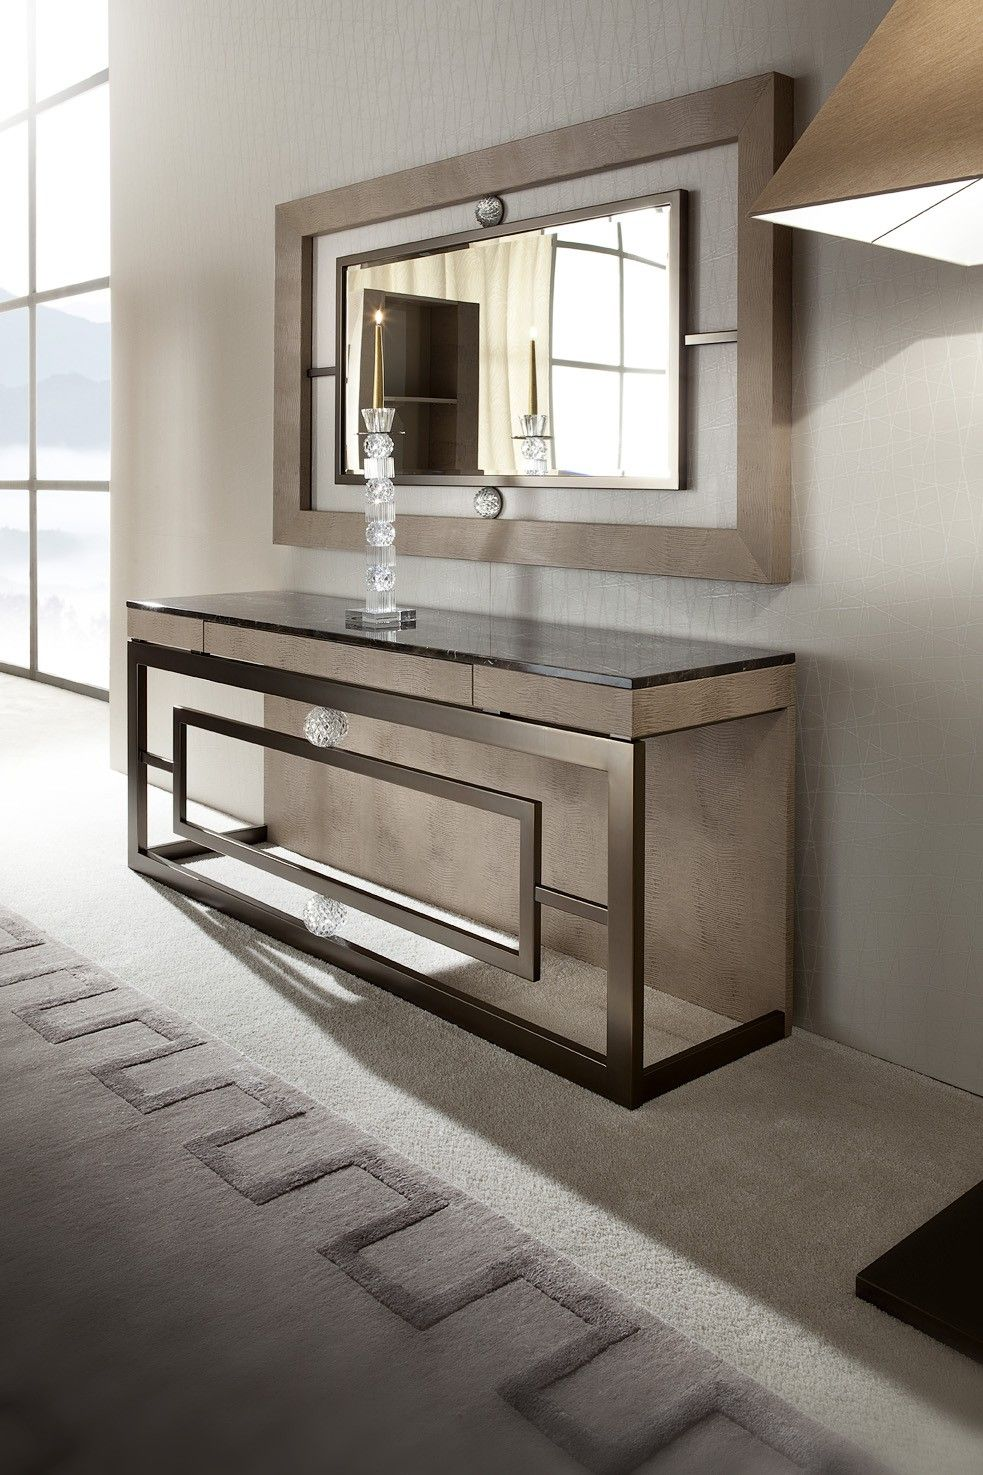 Giorgio Lifetime Console Table Modern Italian Contemporary Furniture Design Modern Console Tables Interior Furniture Design